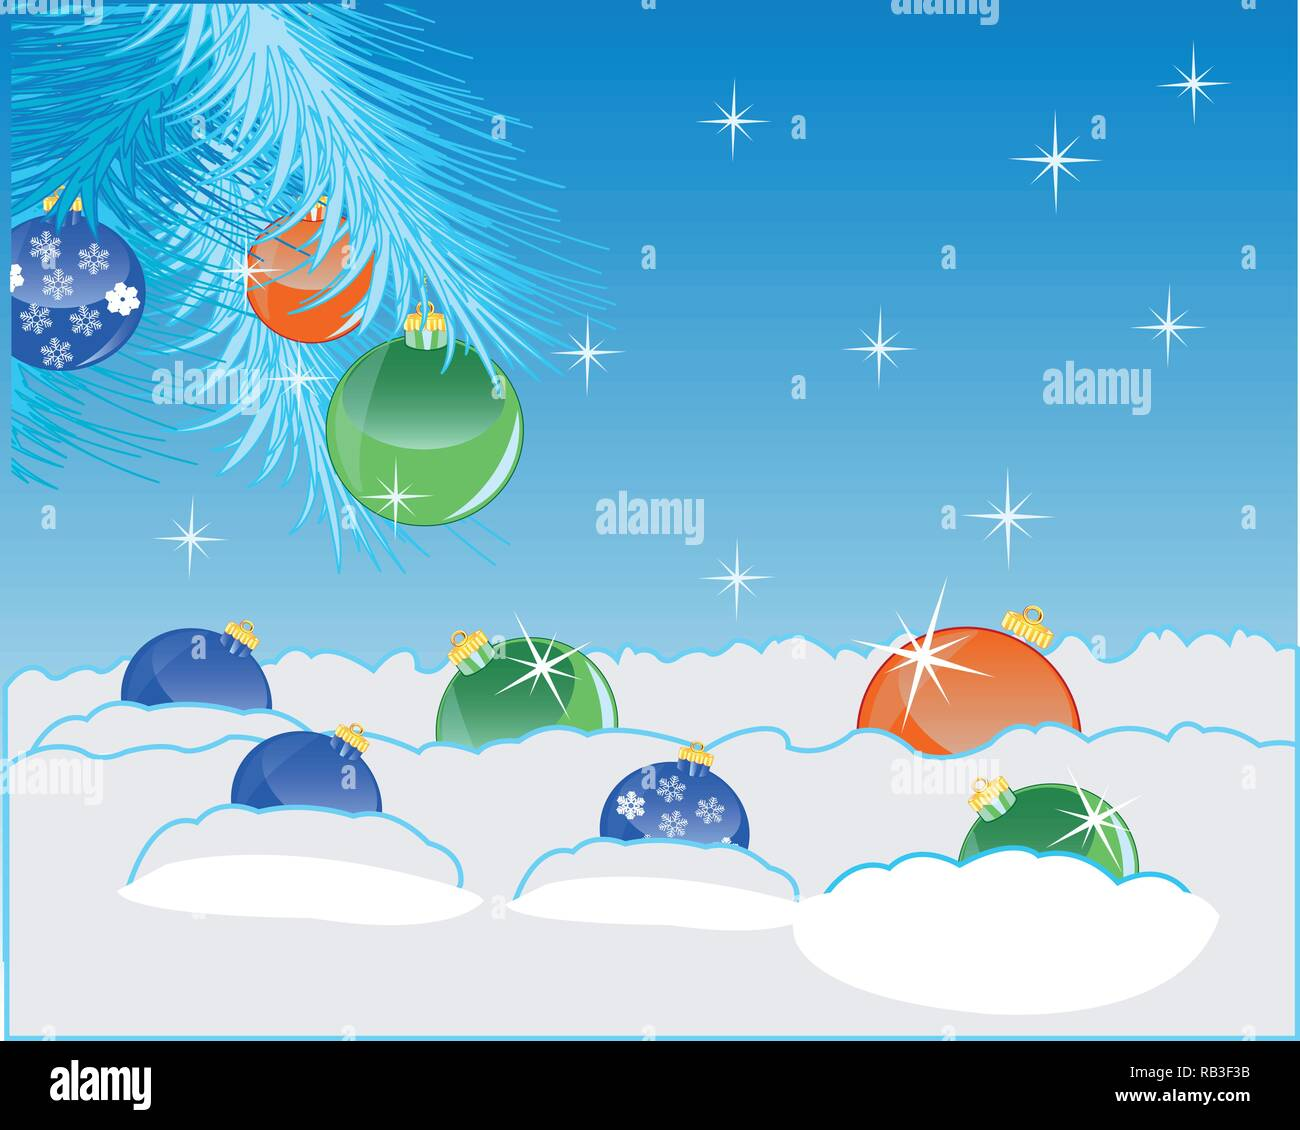 Festive new years background with snow and toy - Stock Image